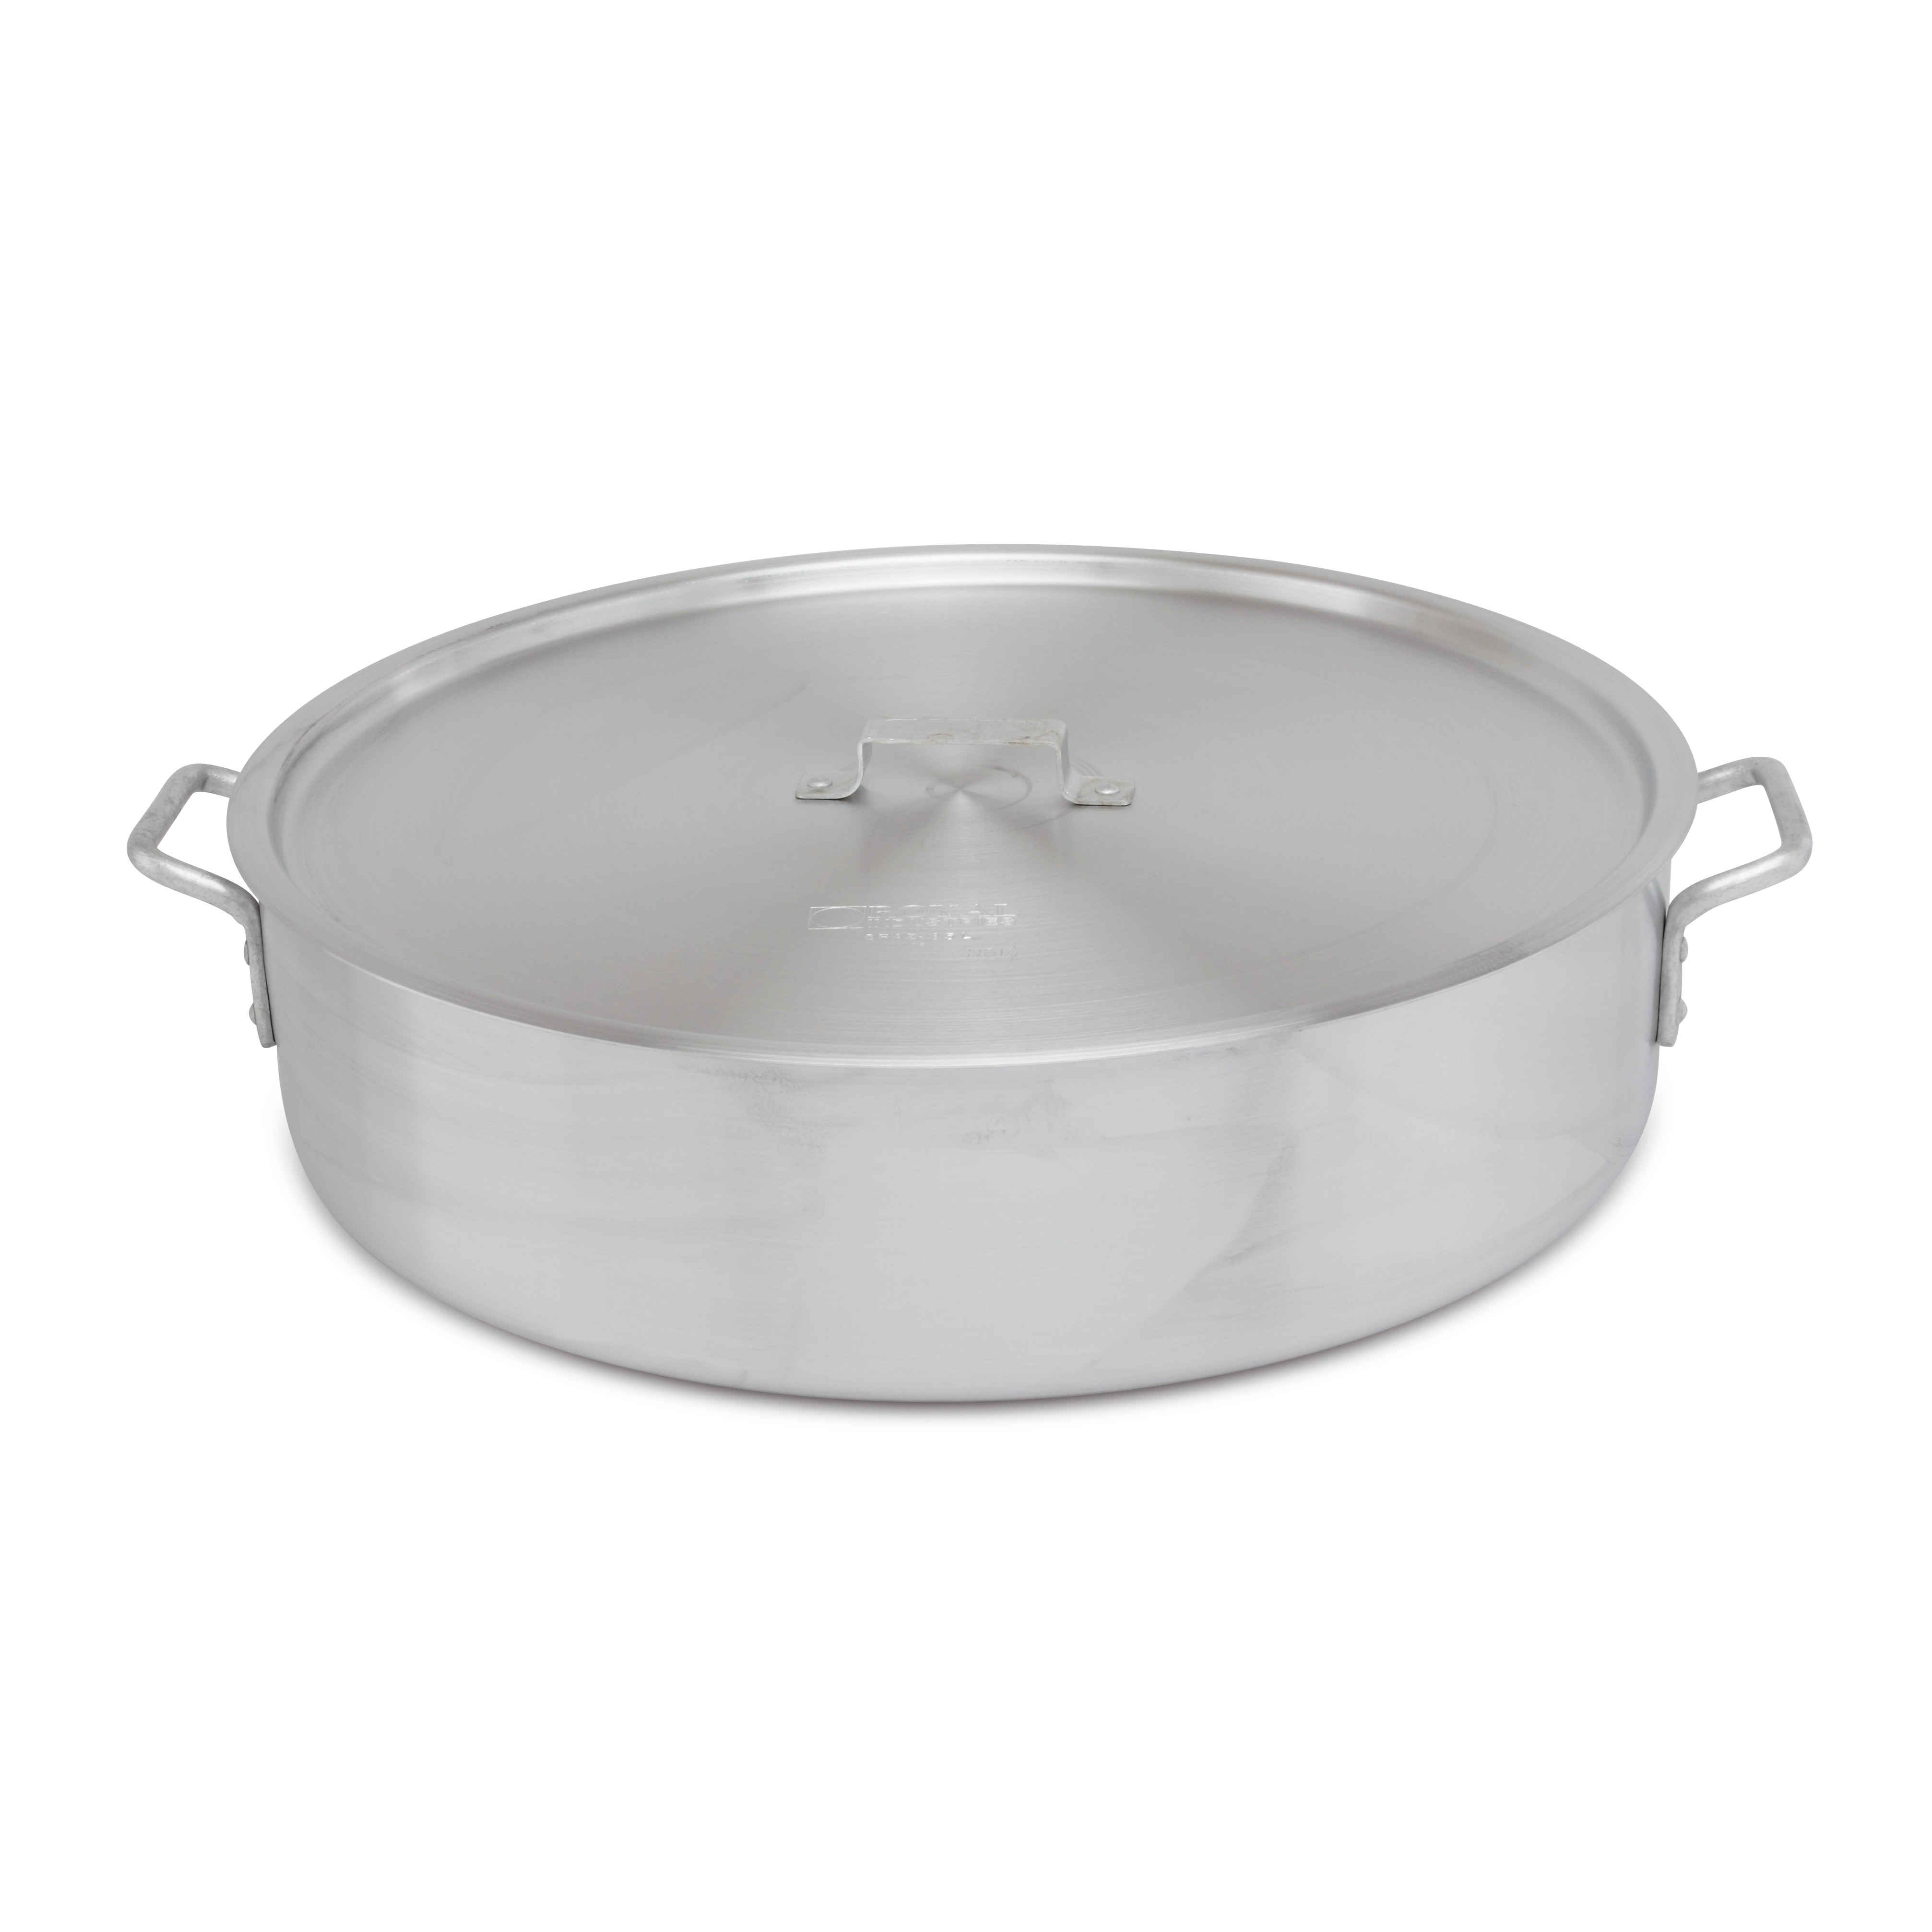 Royal Industries ROY BRAZ SW 35 brazier pan